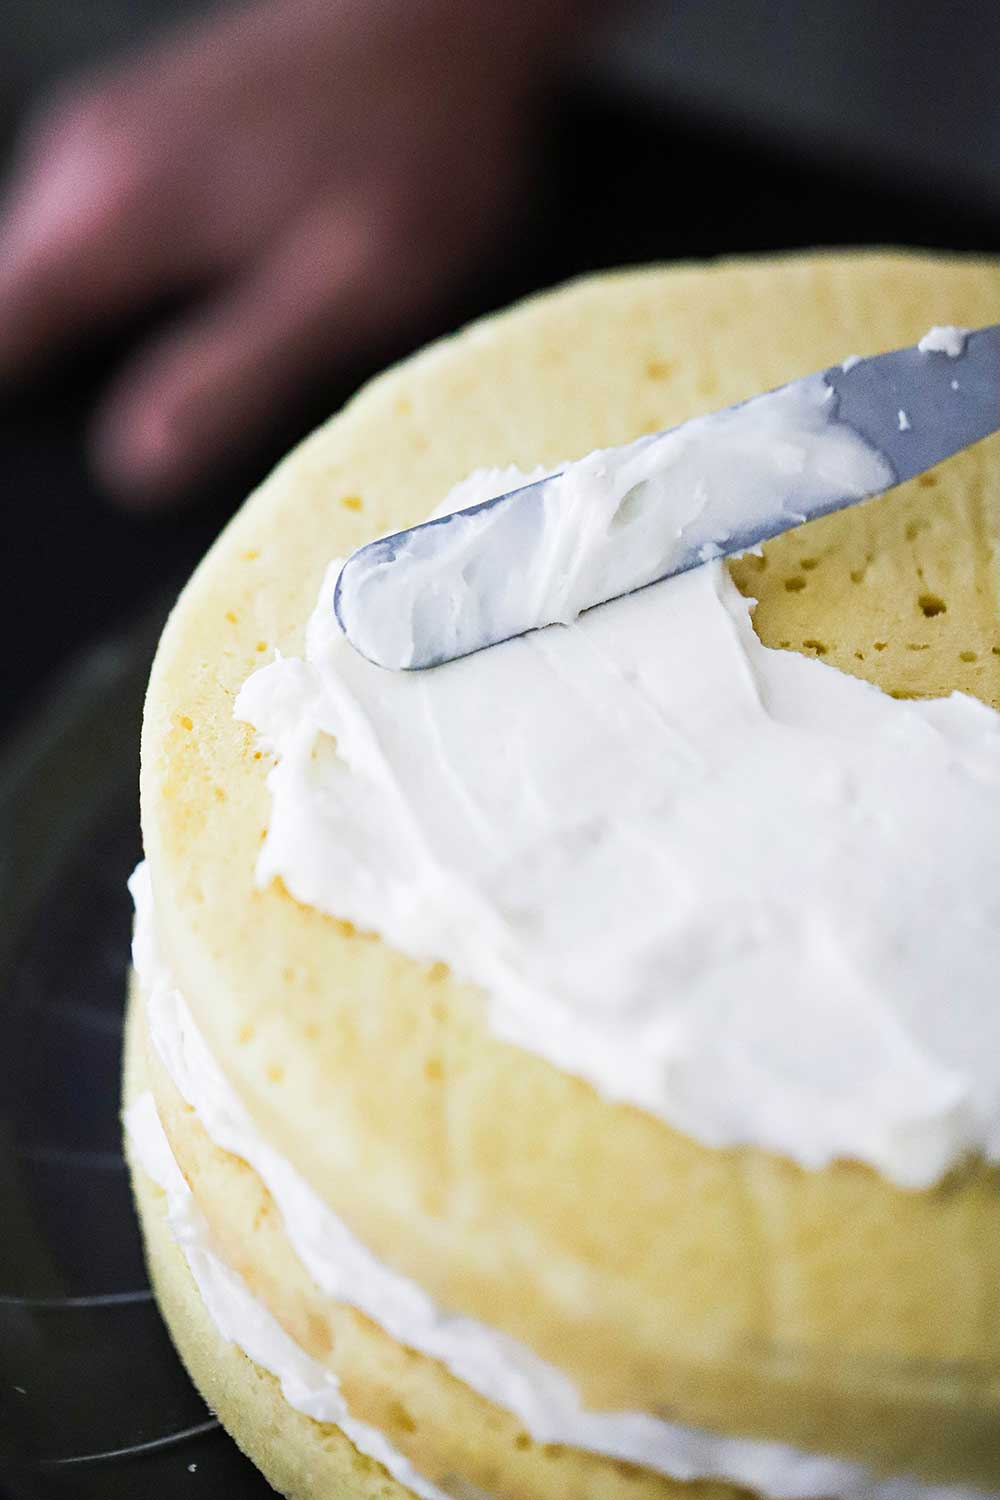 An off-set spatula smearing cream cheese frosting on a 3-layered yellow cake.